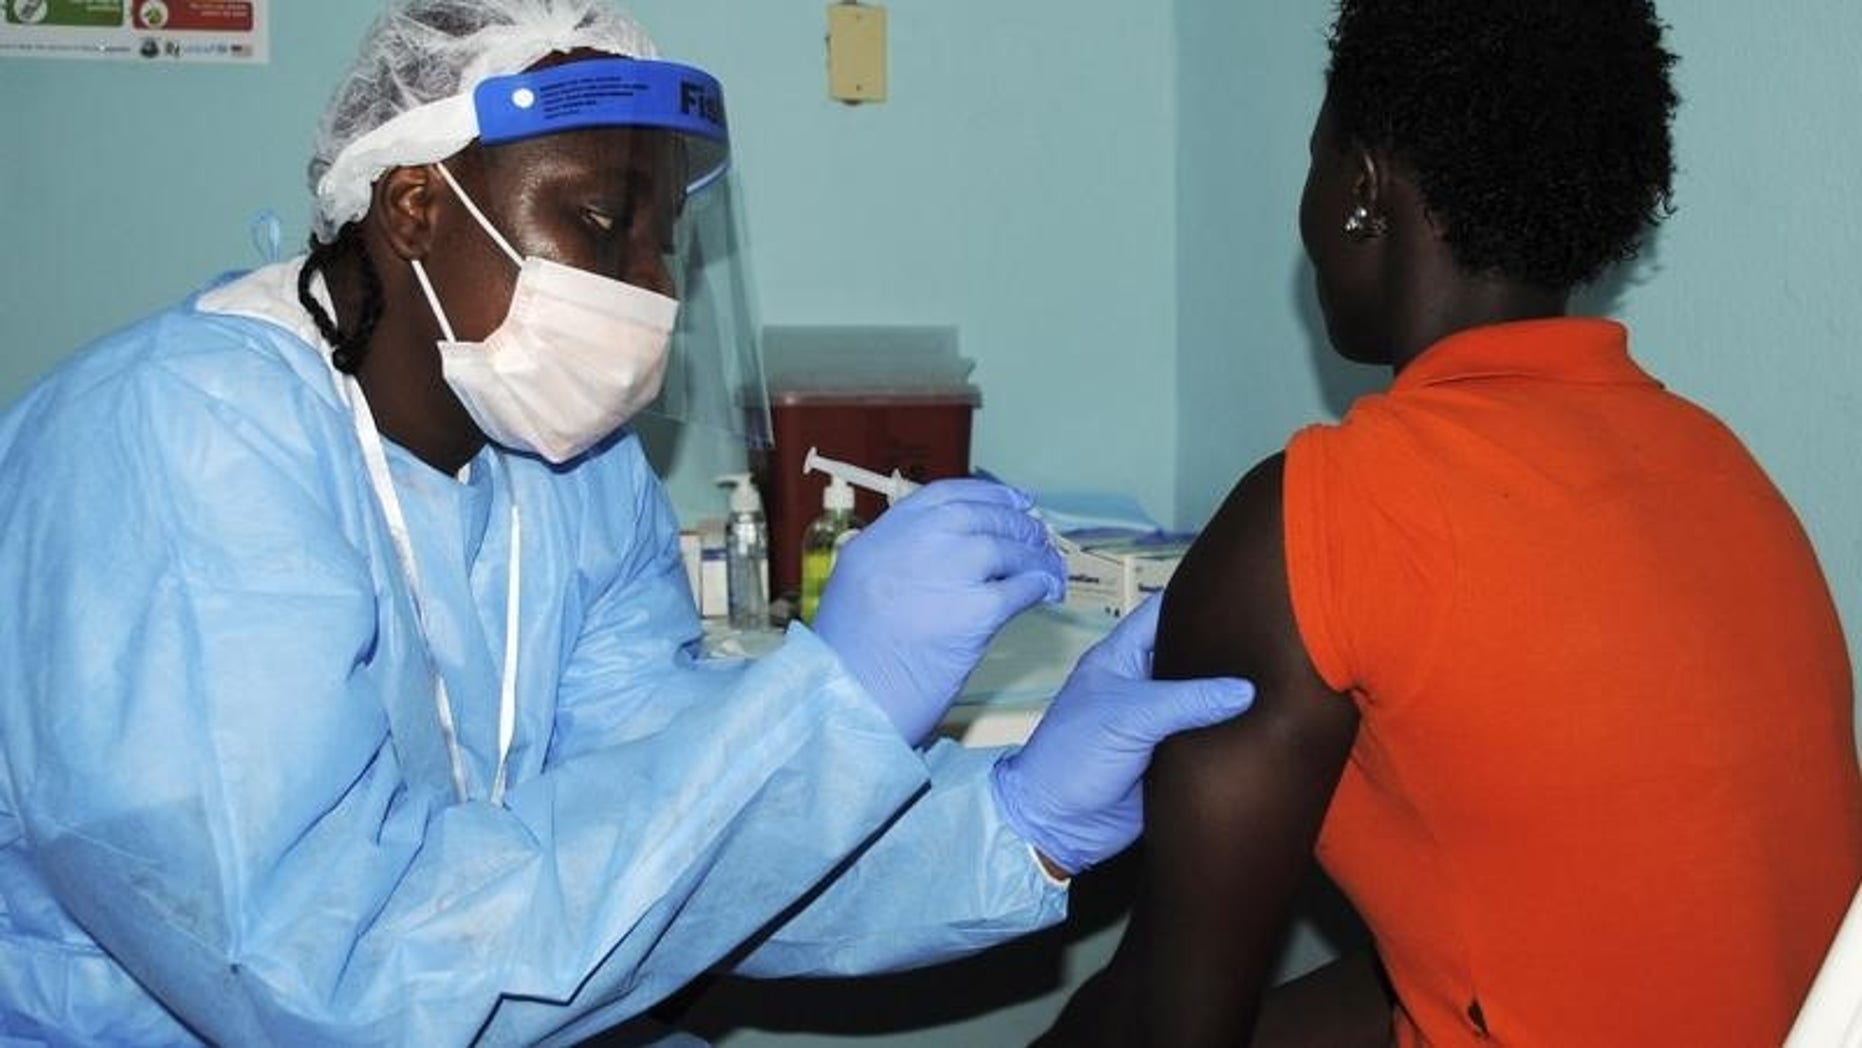 Health worker injects a woman with an Ebola vaccine during a trial in Monrovia